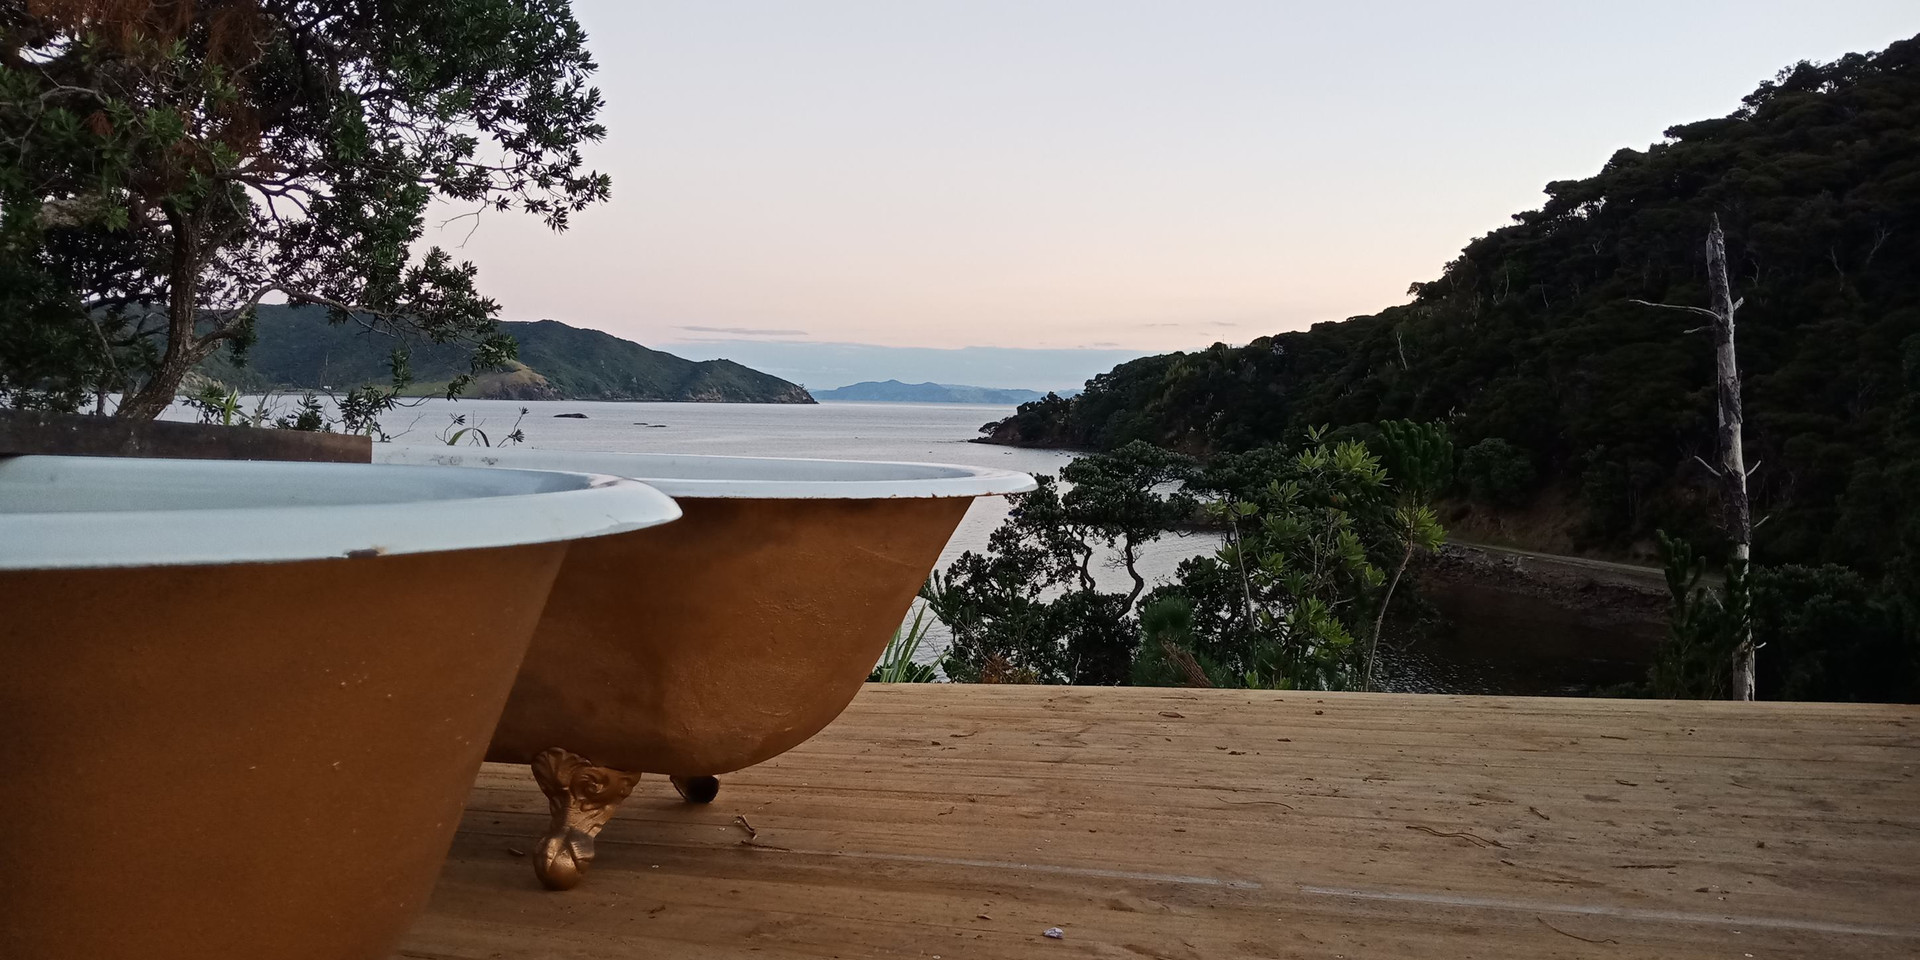 Outdoor heated bath tubs with views back to the Coromandel